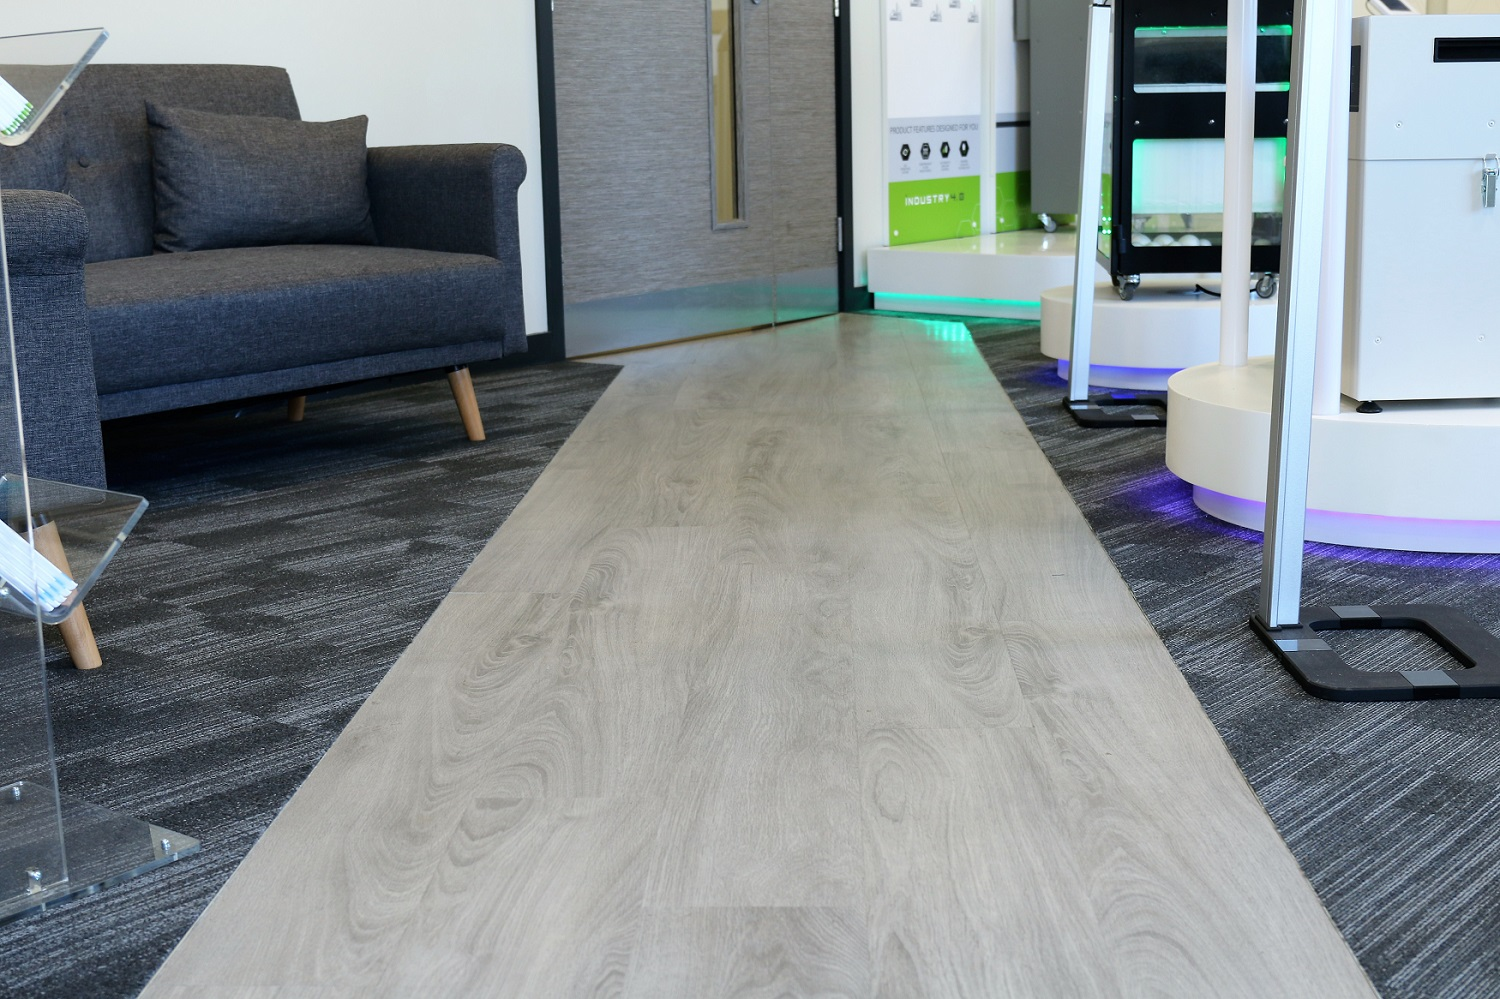 Clean, modern flooring in reception